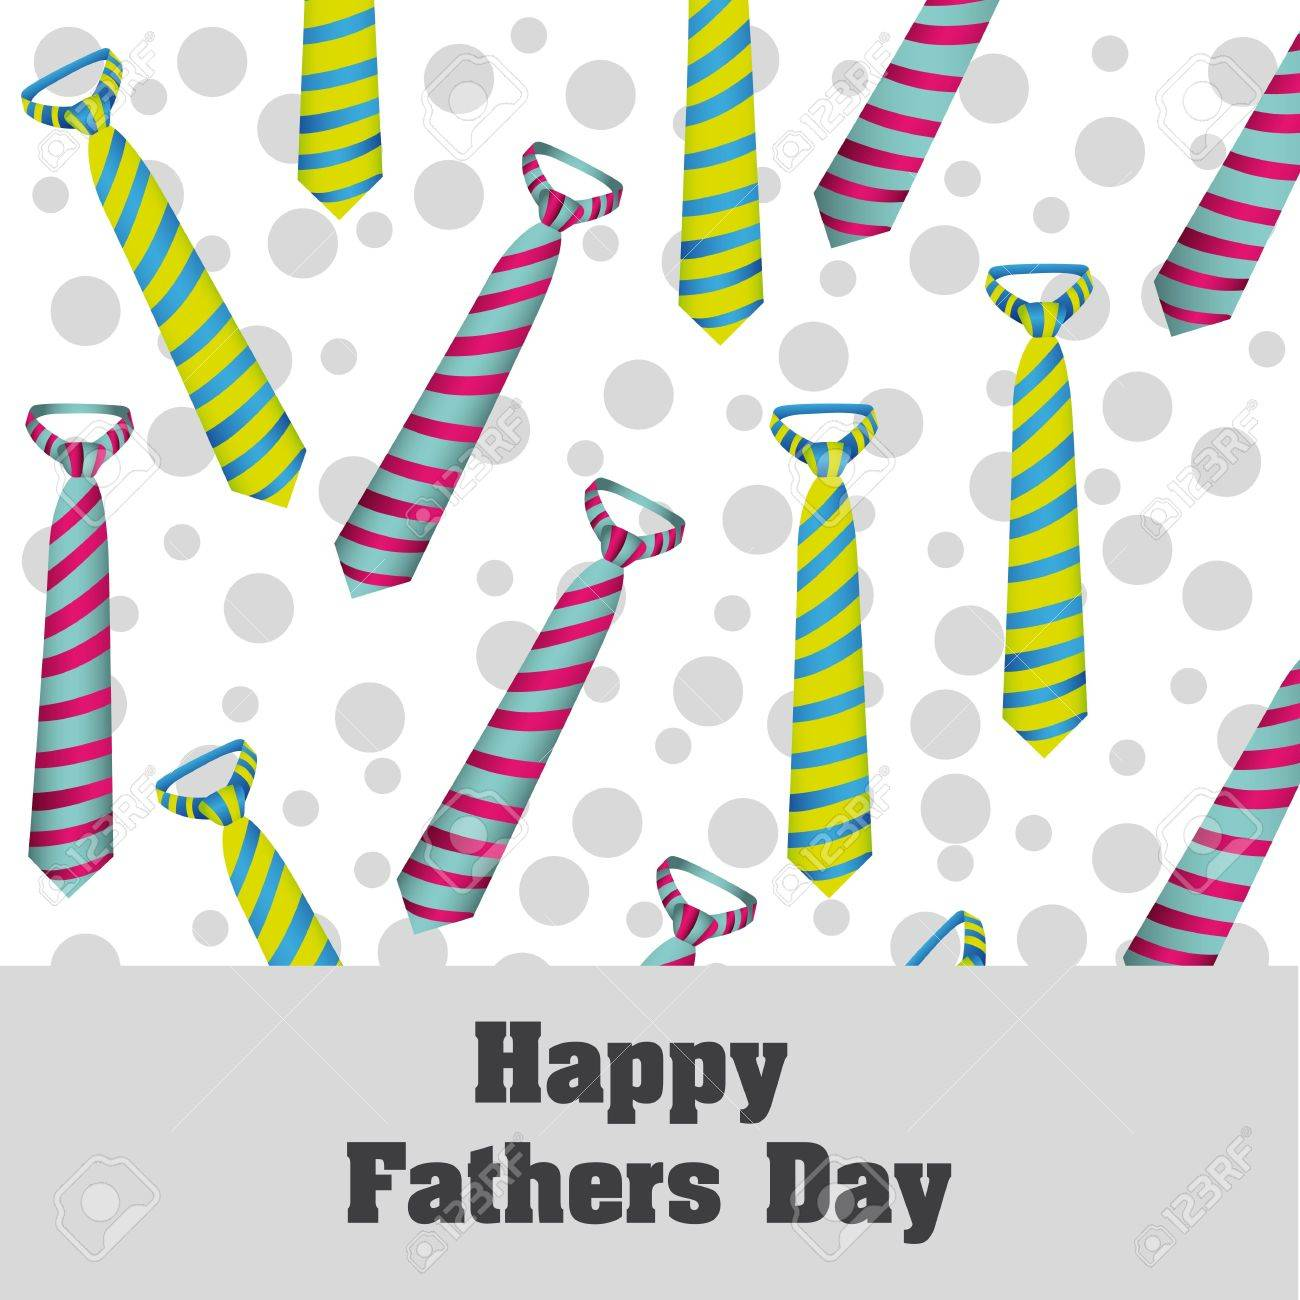 Happy Father's Day, holiday card with ties and dots Stock Vector - 13774468